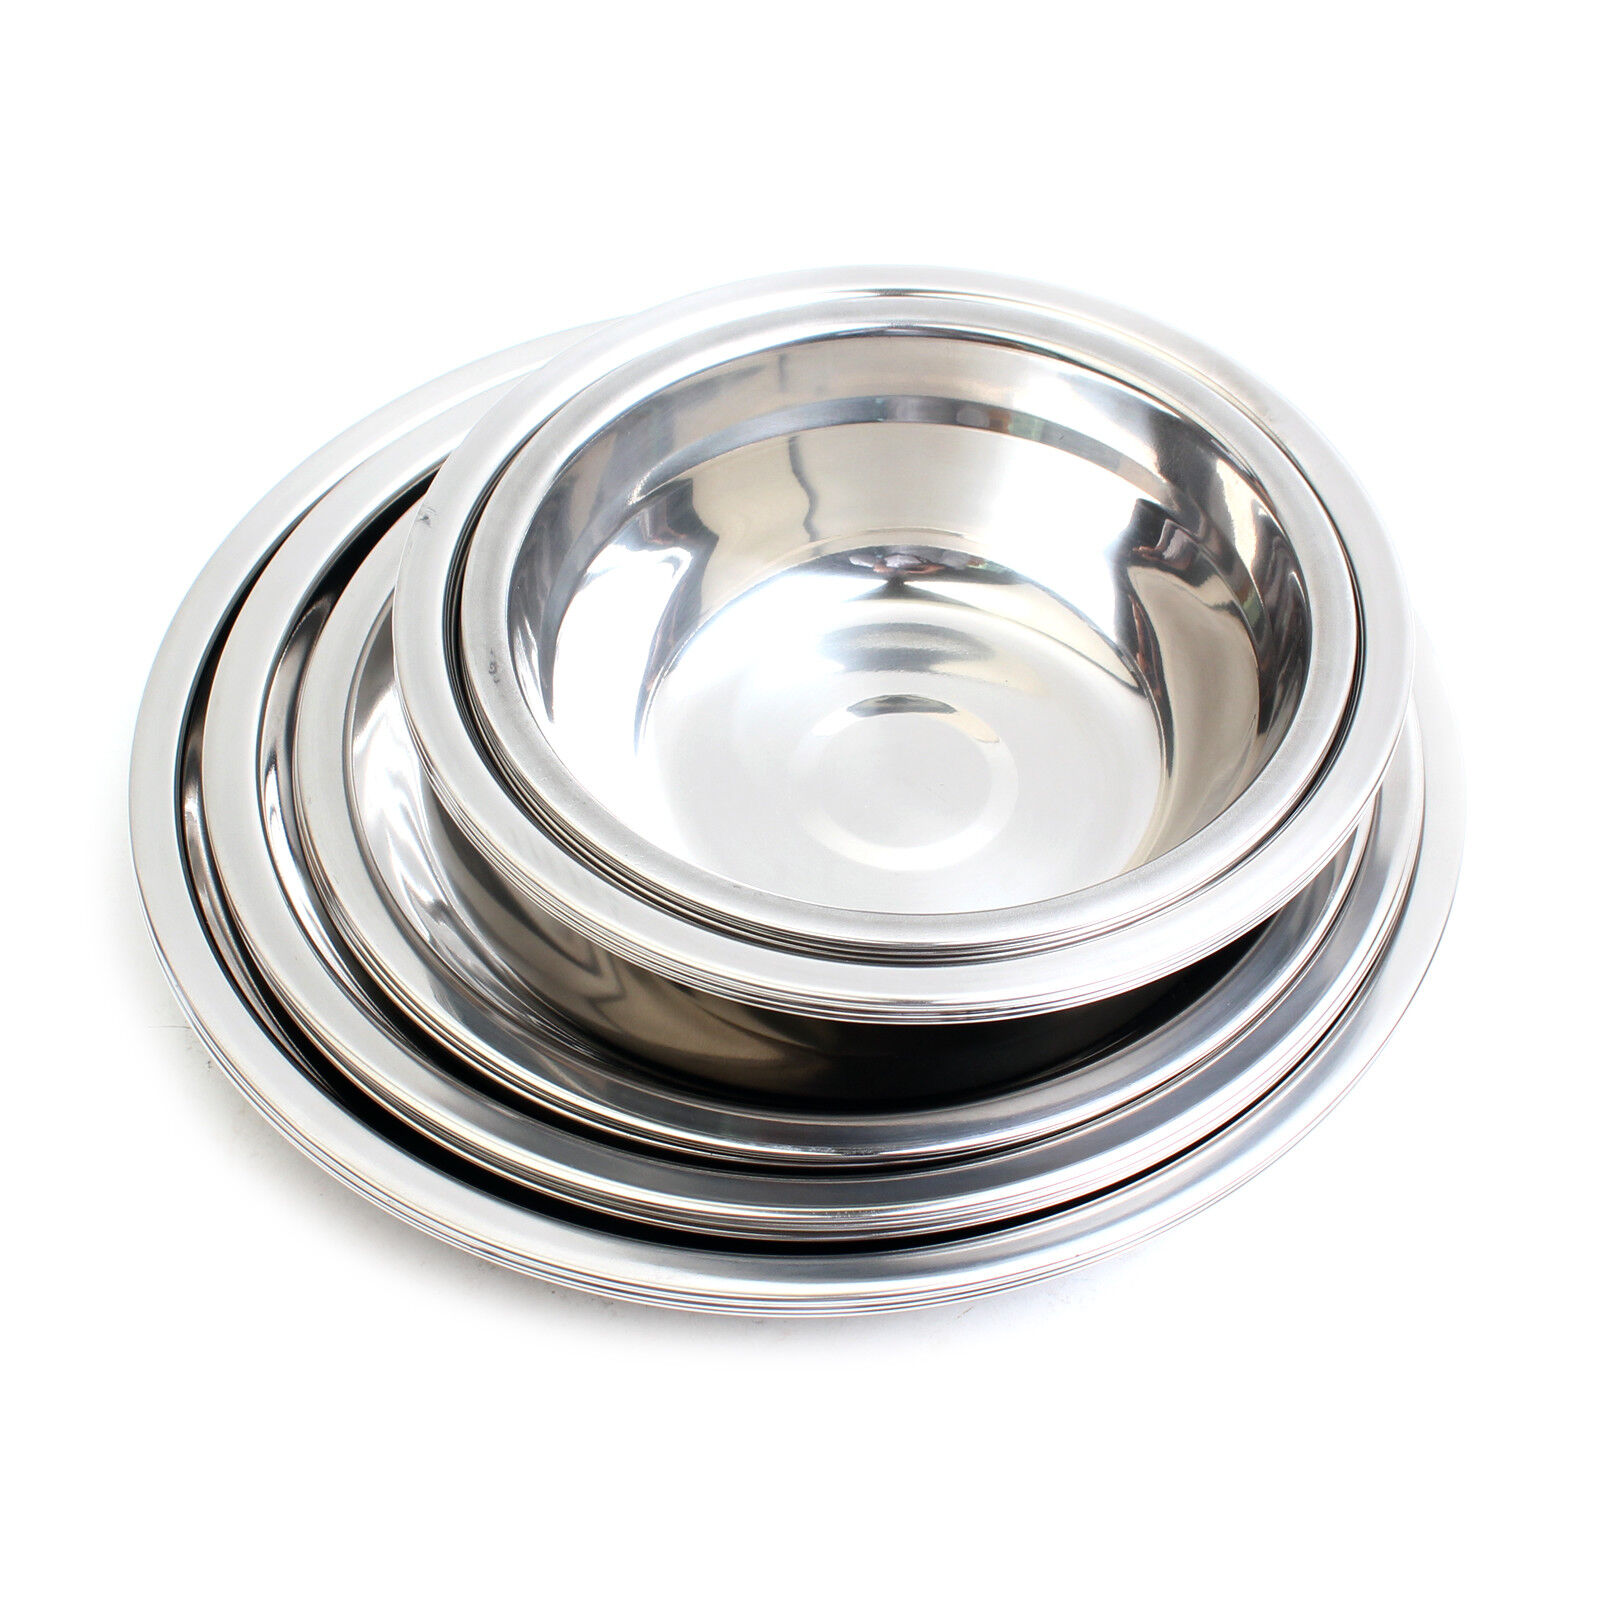 Bowl Set Stainless Steel Camping Outdoor Cookware 20PCS Set